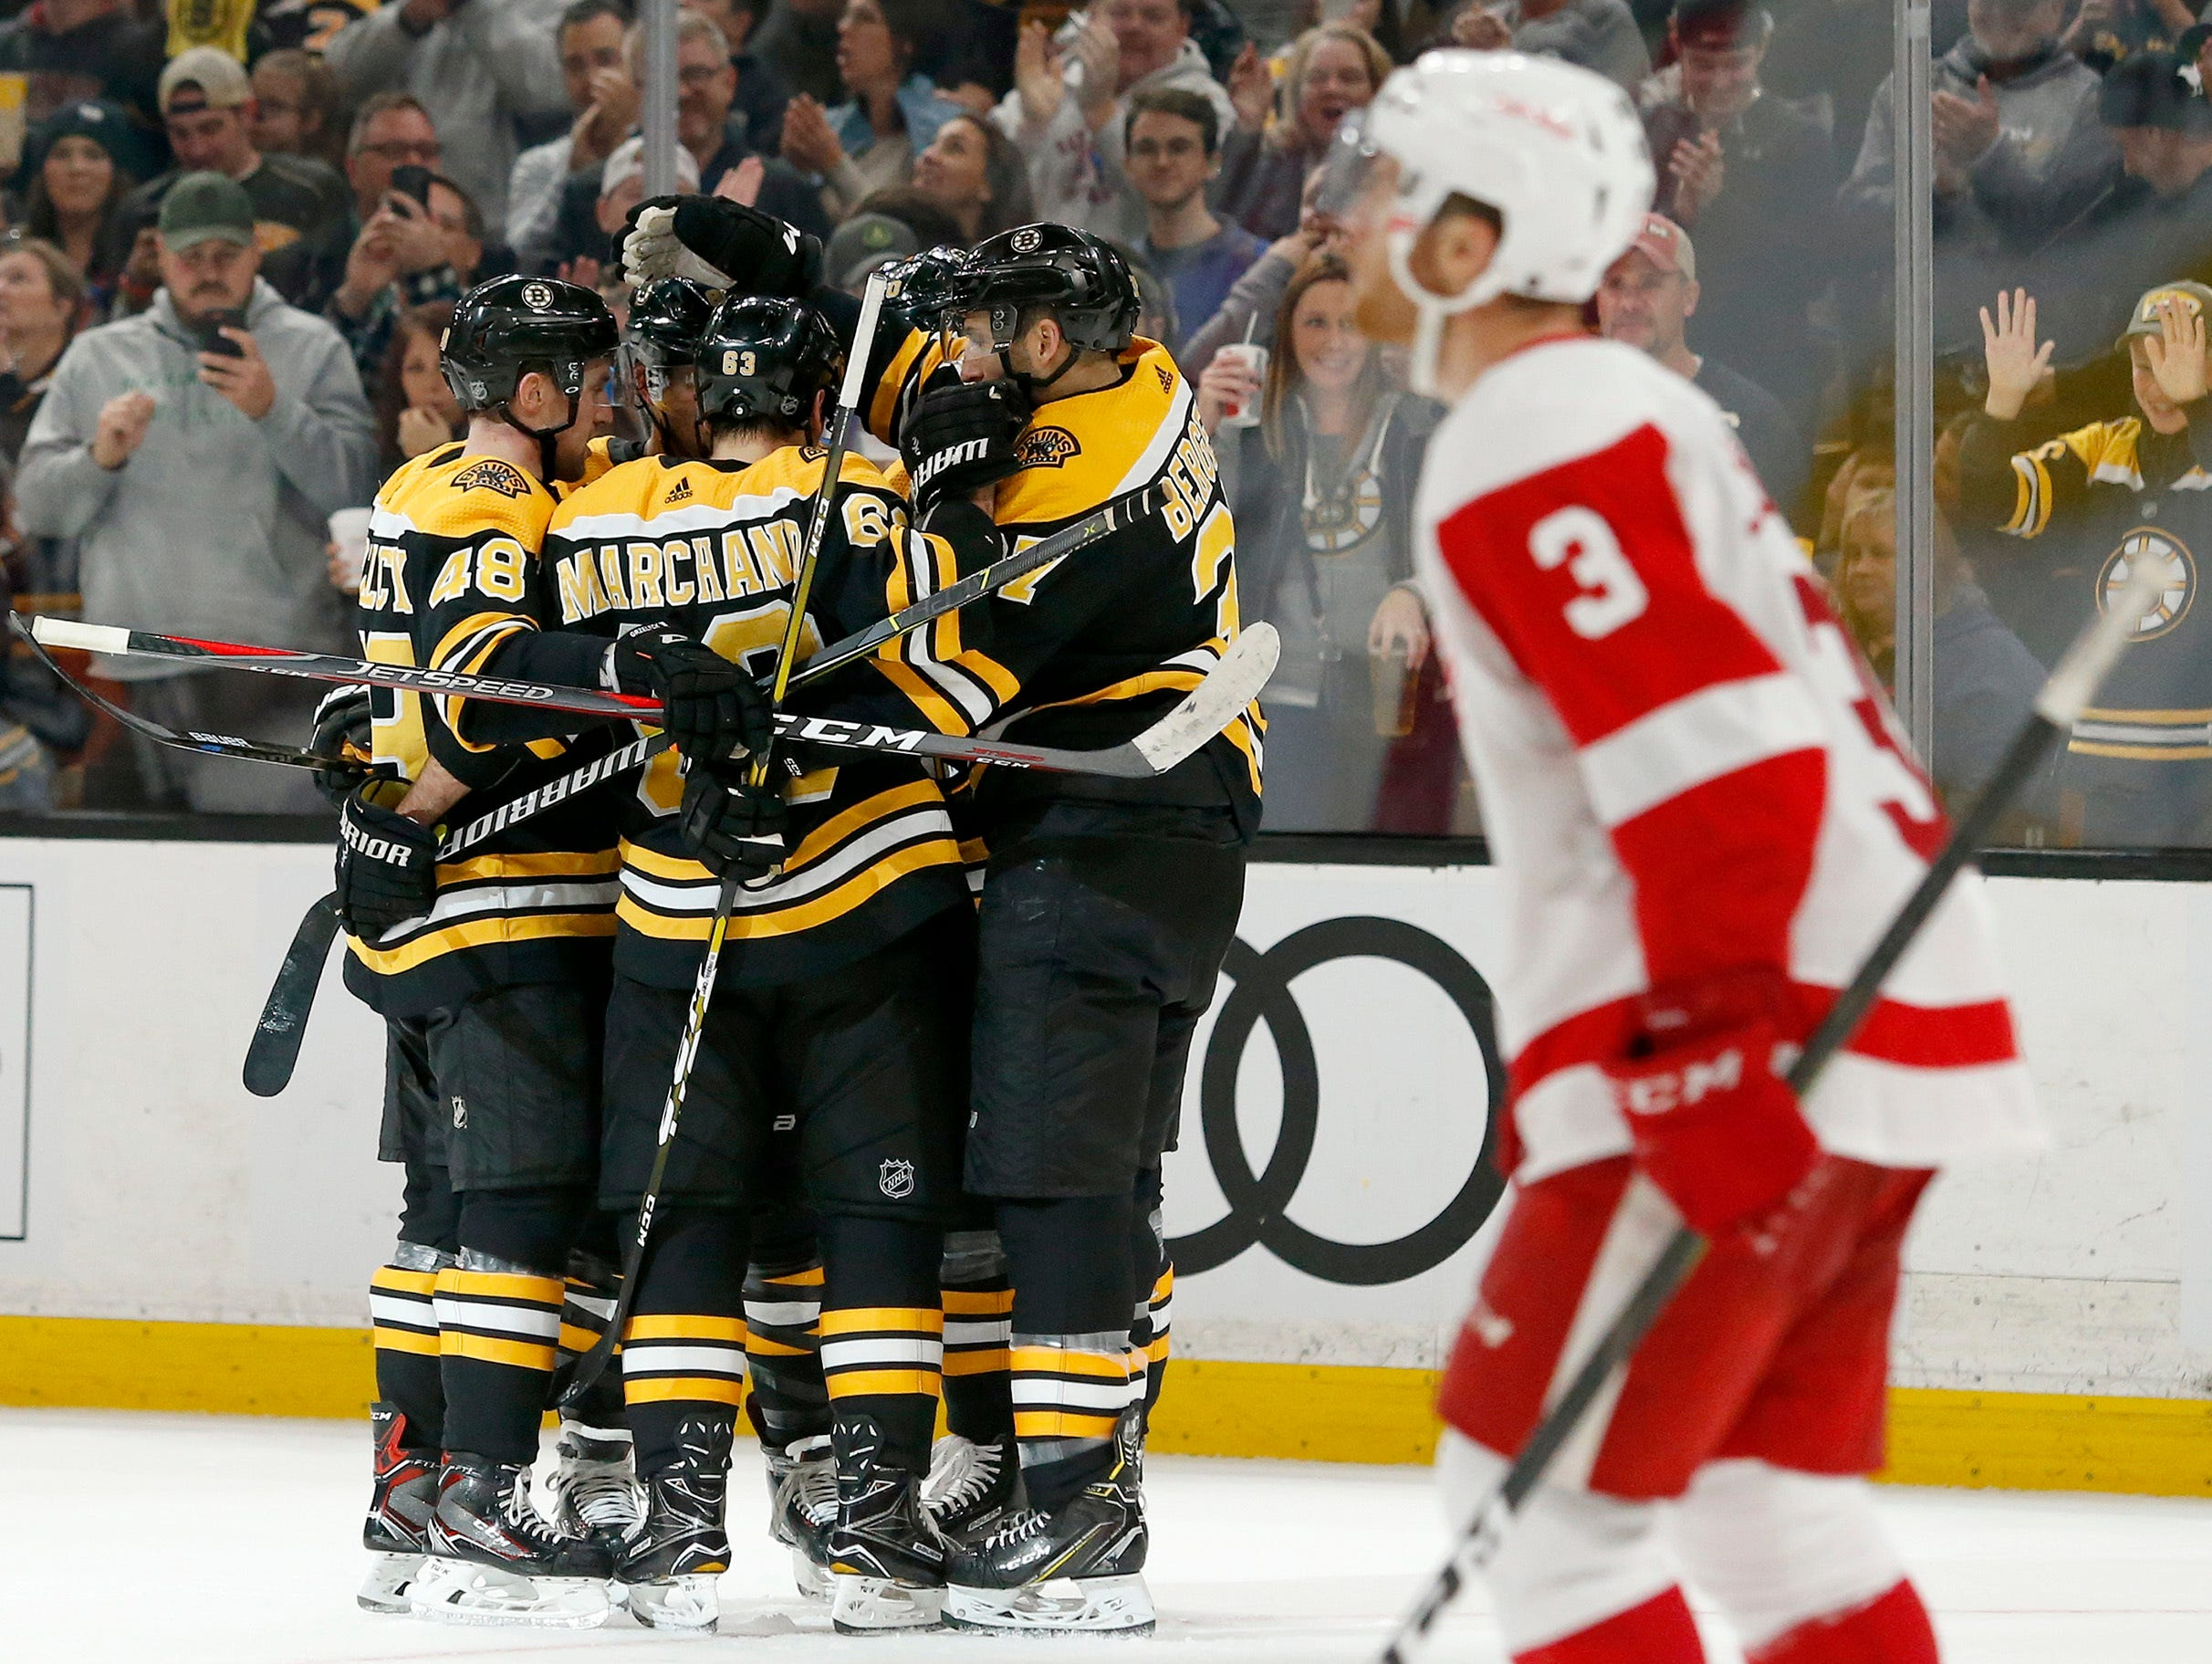 Boston Bruins players surround David Pastrnak after he scored as Detroit Red Wings defenseman Nick Jensen (3) looks up for the replay during the second period.